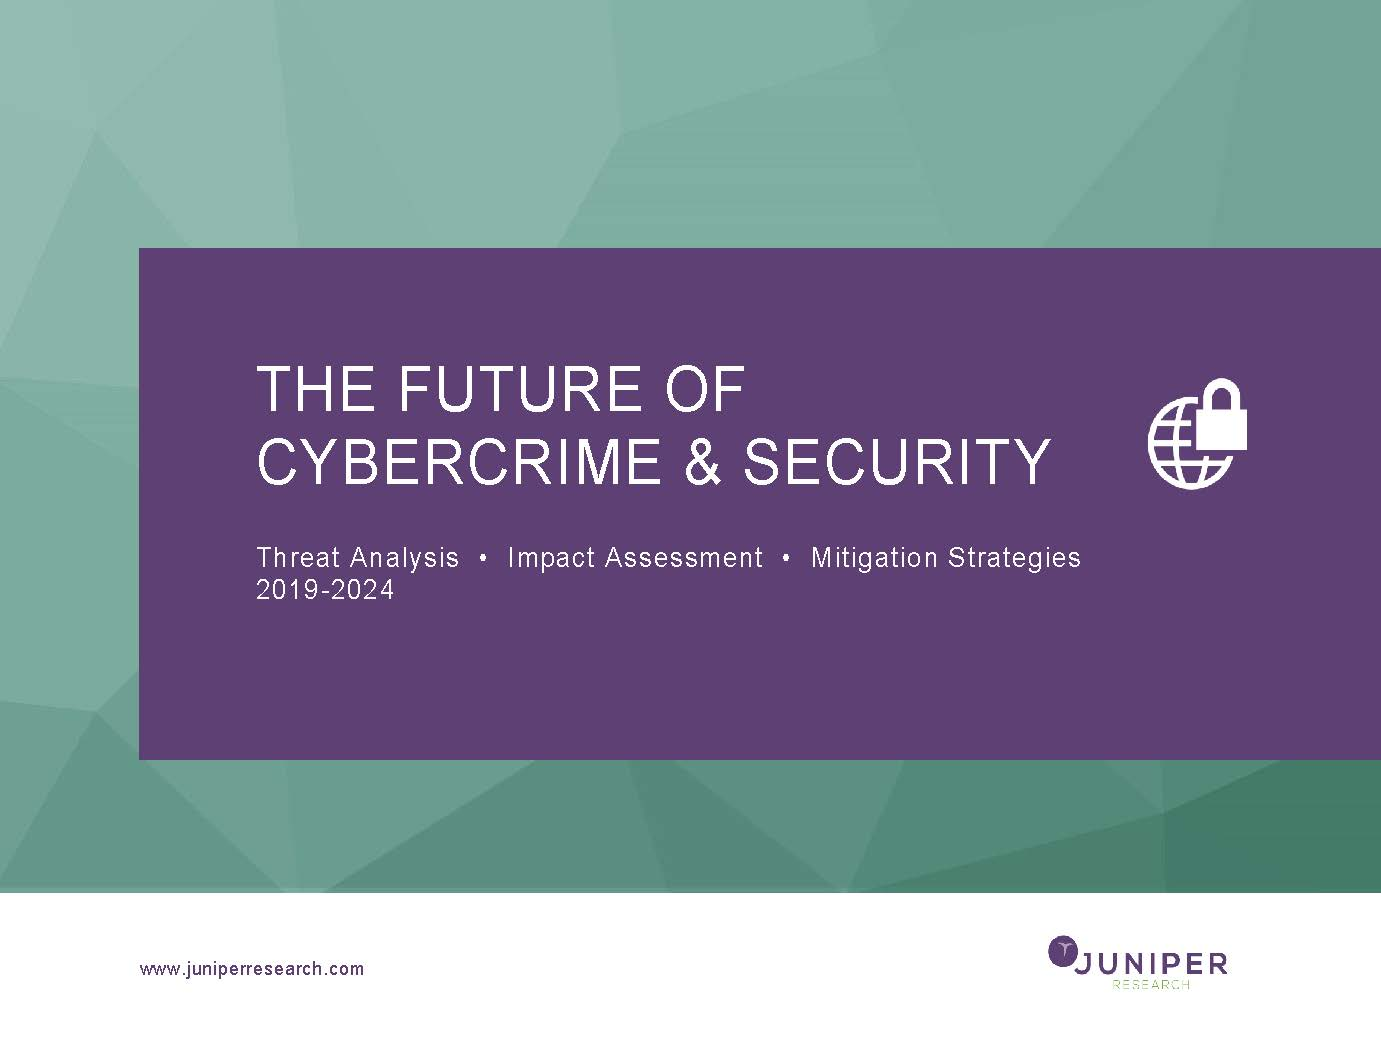 The Future of Cybercrime & Security